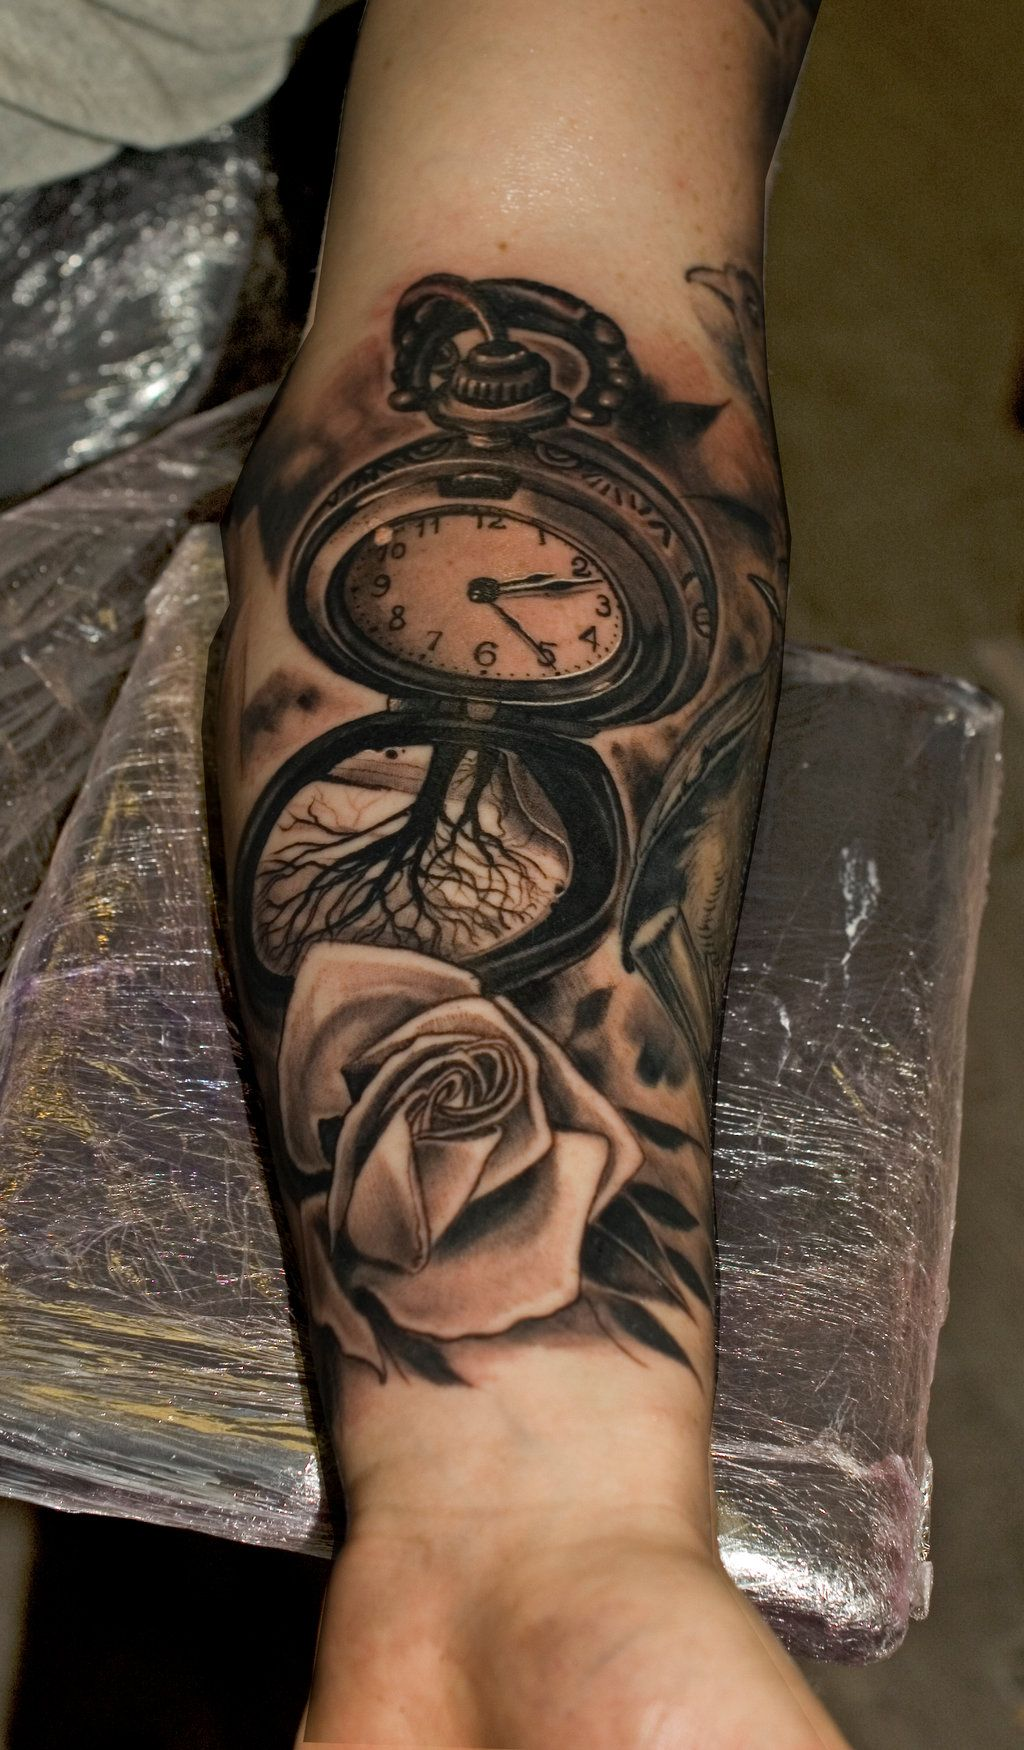 pocket watch tattoo google search tattoo inspiration pinterest pocket watch tattoos. Black Bedroom Furniture Sets. Home Design Ideas